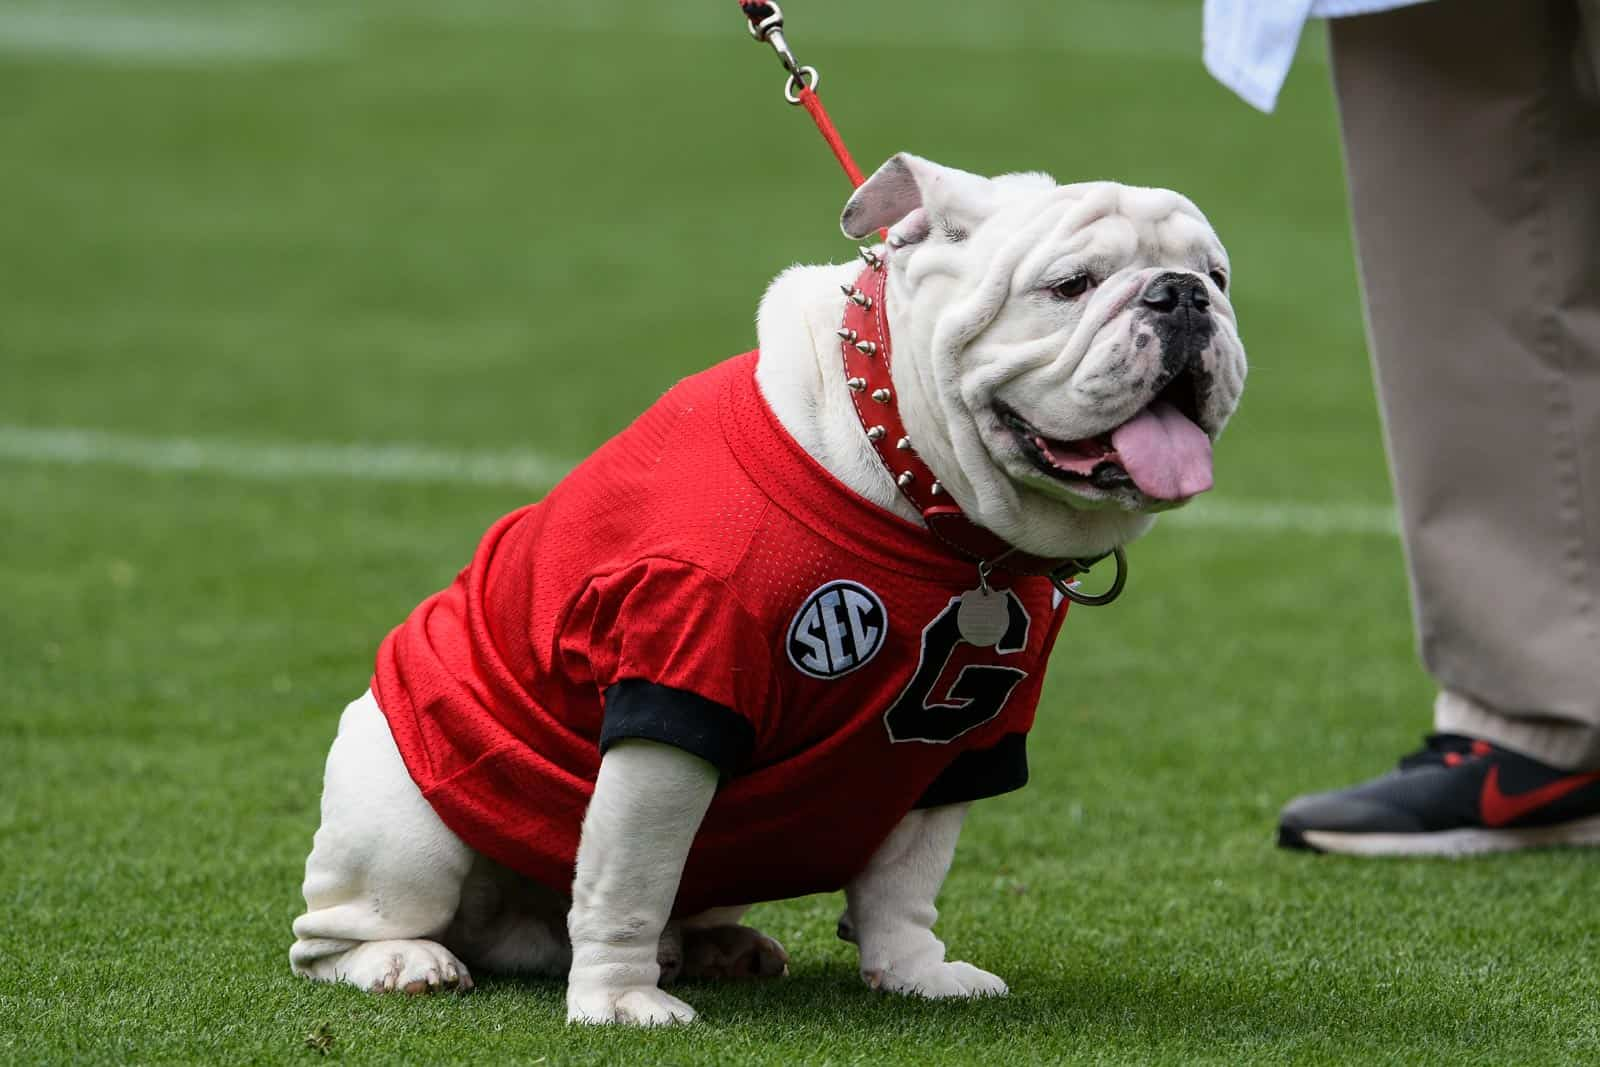 2019 UGA football schedule ranked 13th toughest by Phil Steele